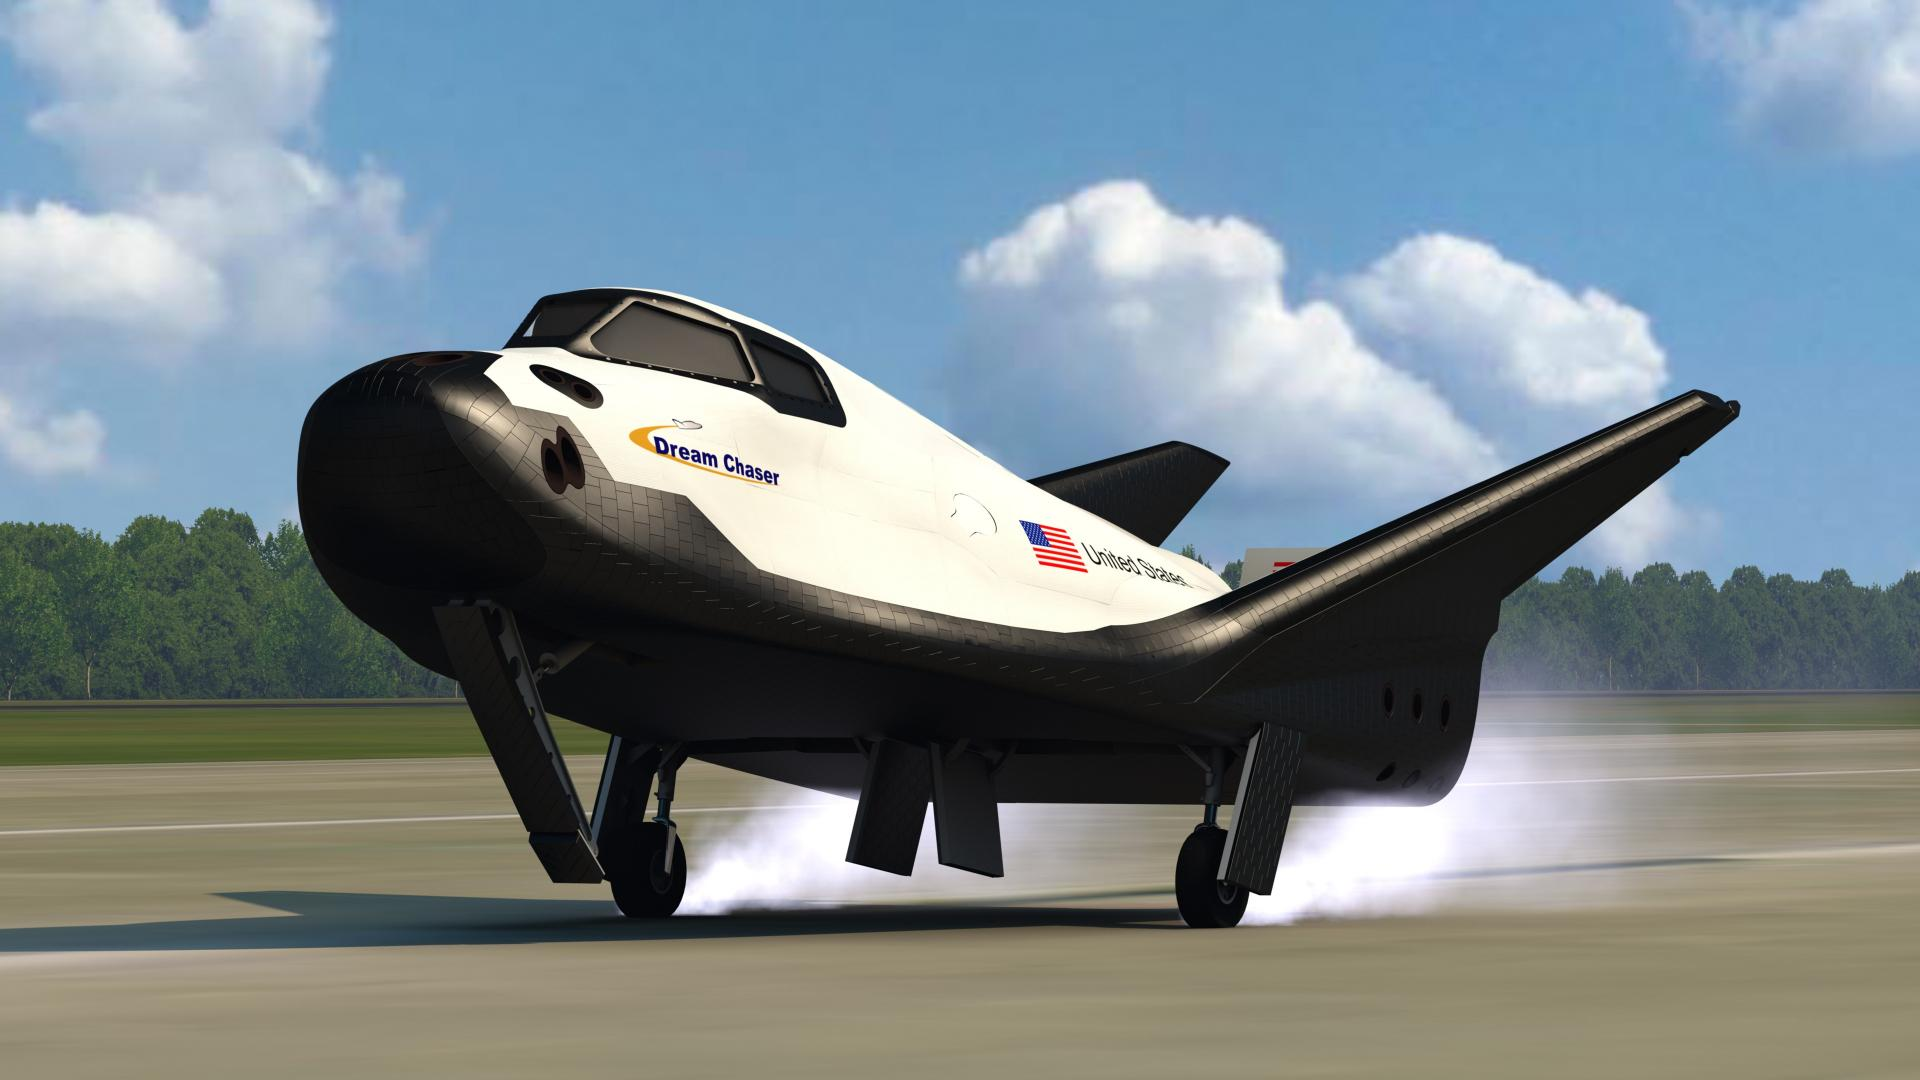 Dream Chaser Landing _3840X2160.jpg